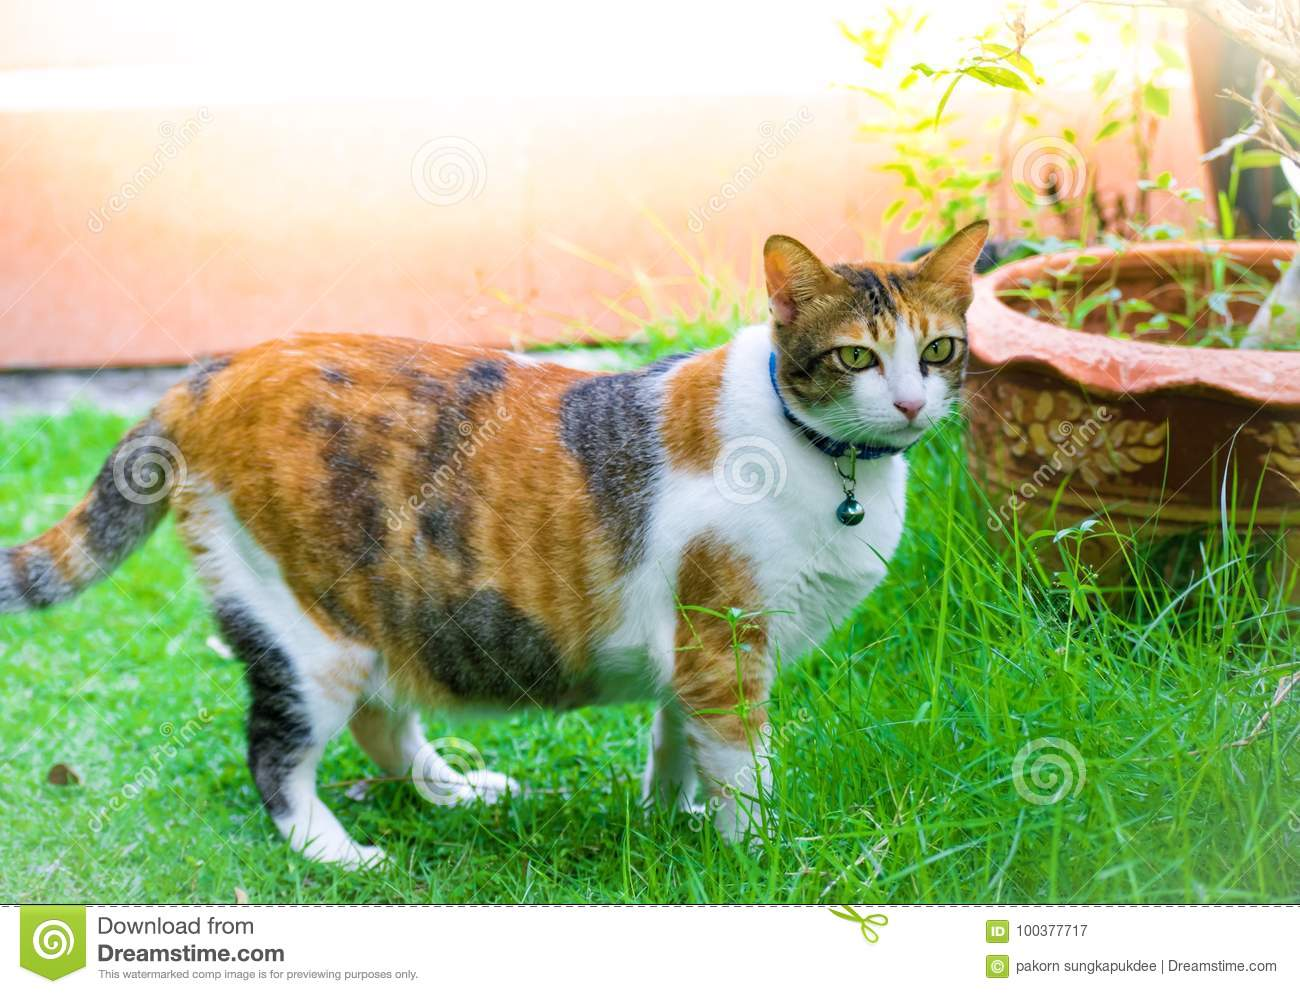 Cute Cats Are Playing In The House On Lawn Using Wallpaper Or